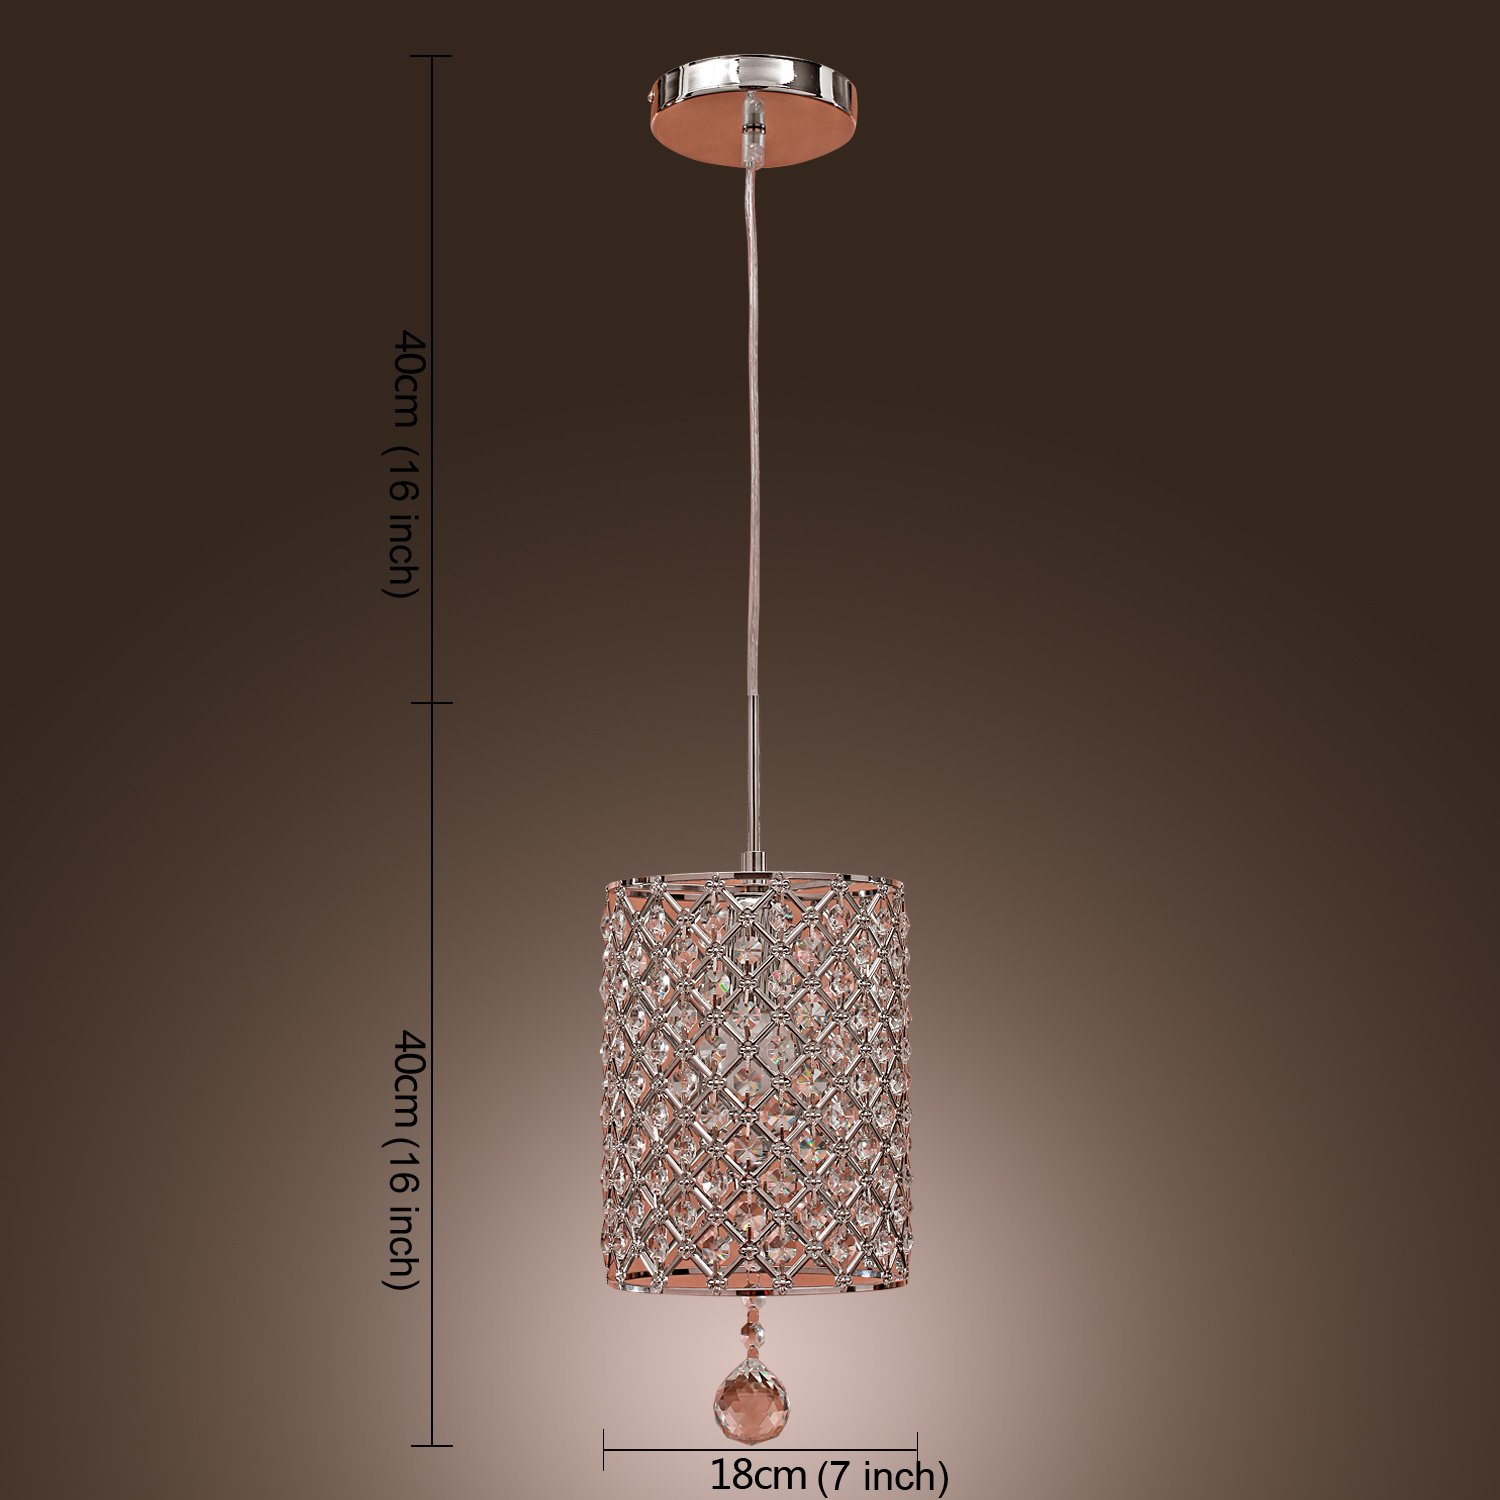 lightinthebox contemporary crystal drop pendant light in cylinder  - lightinthebox contemporary crystal drop pendant light in cylinder stylemodern home ceiling light fixture flush mount pendant light chandelierslighting